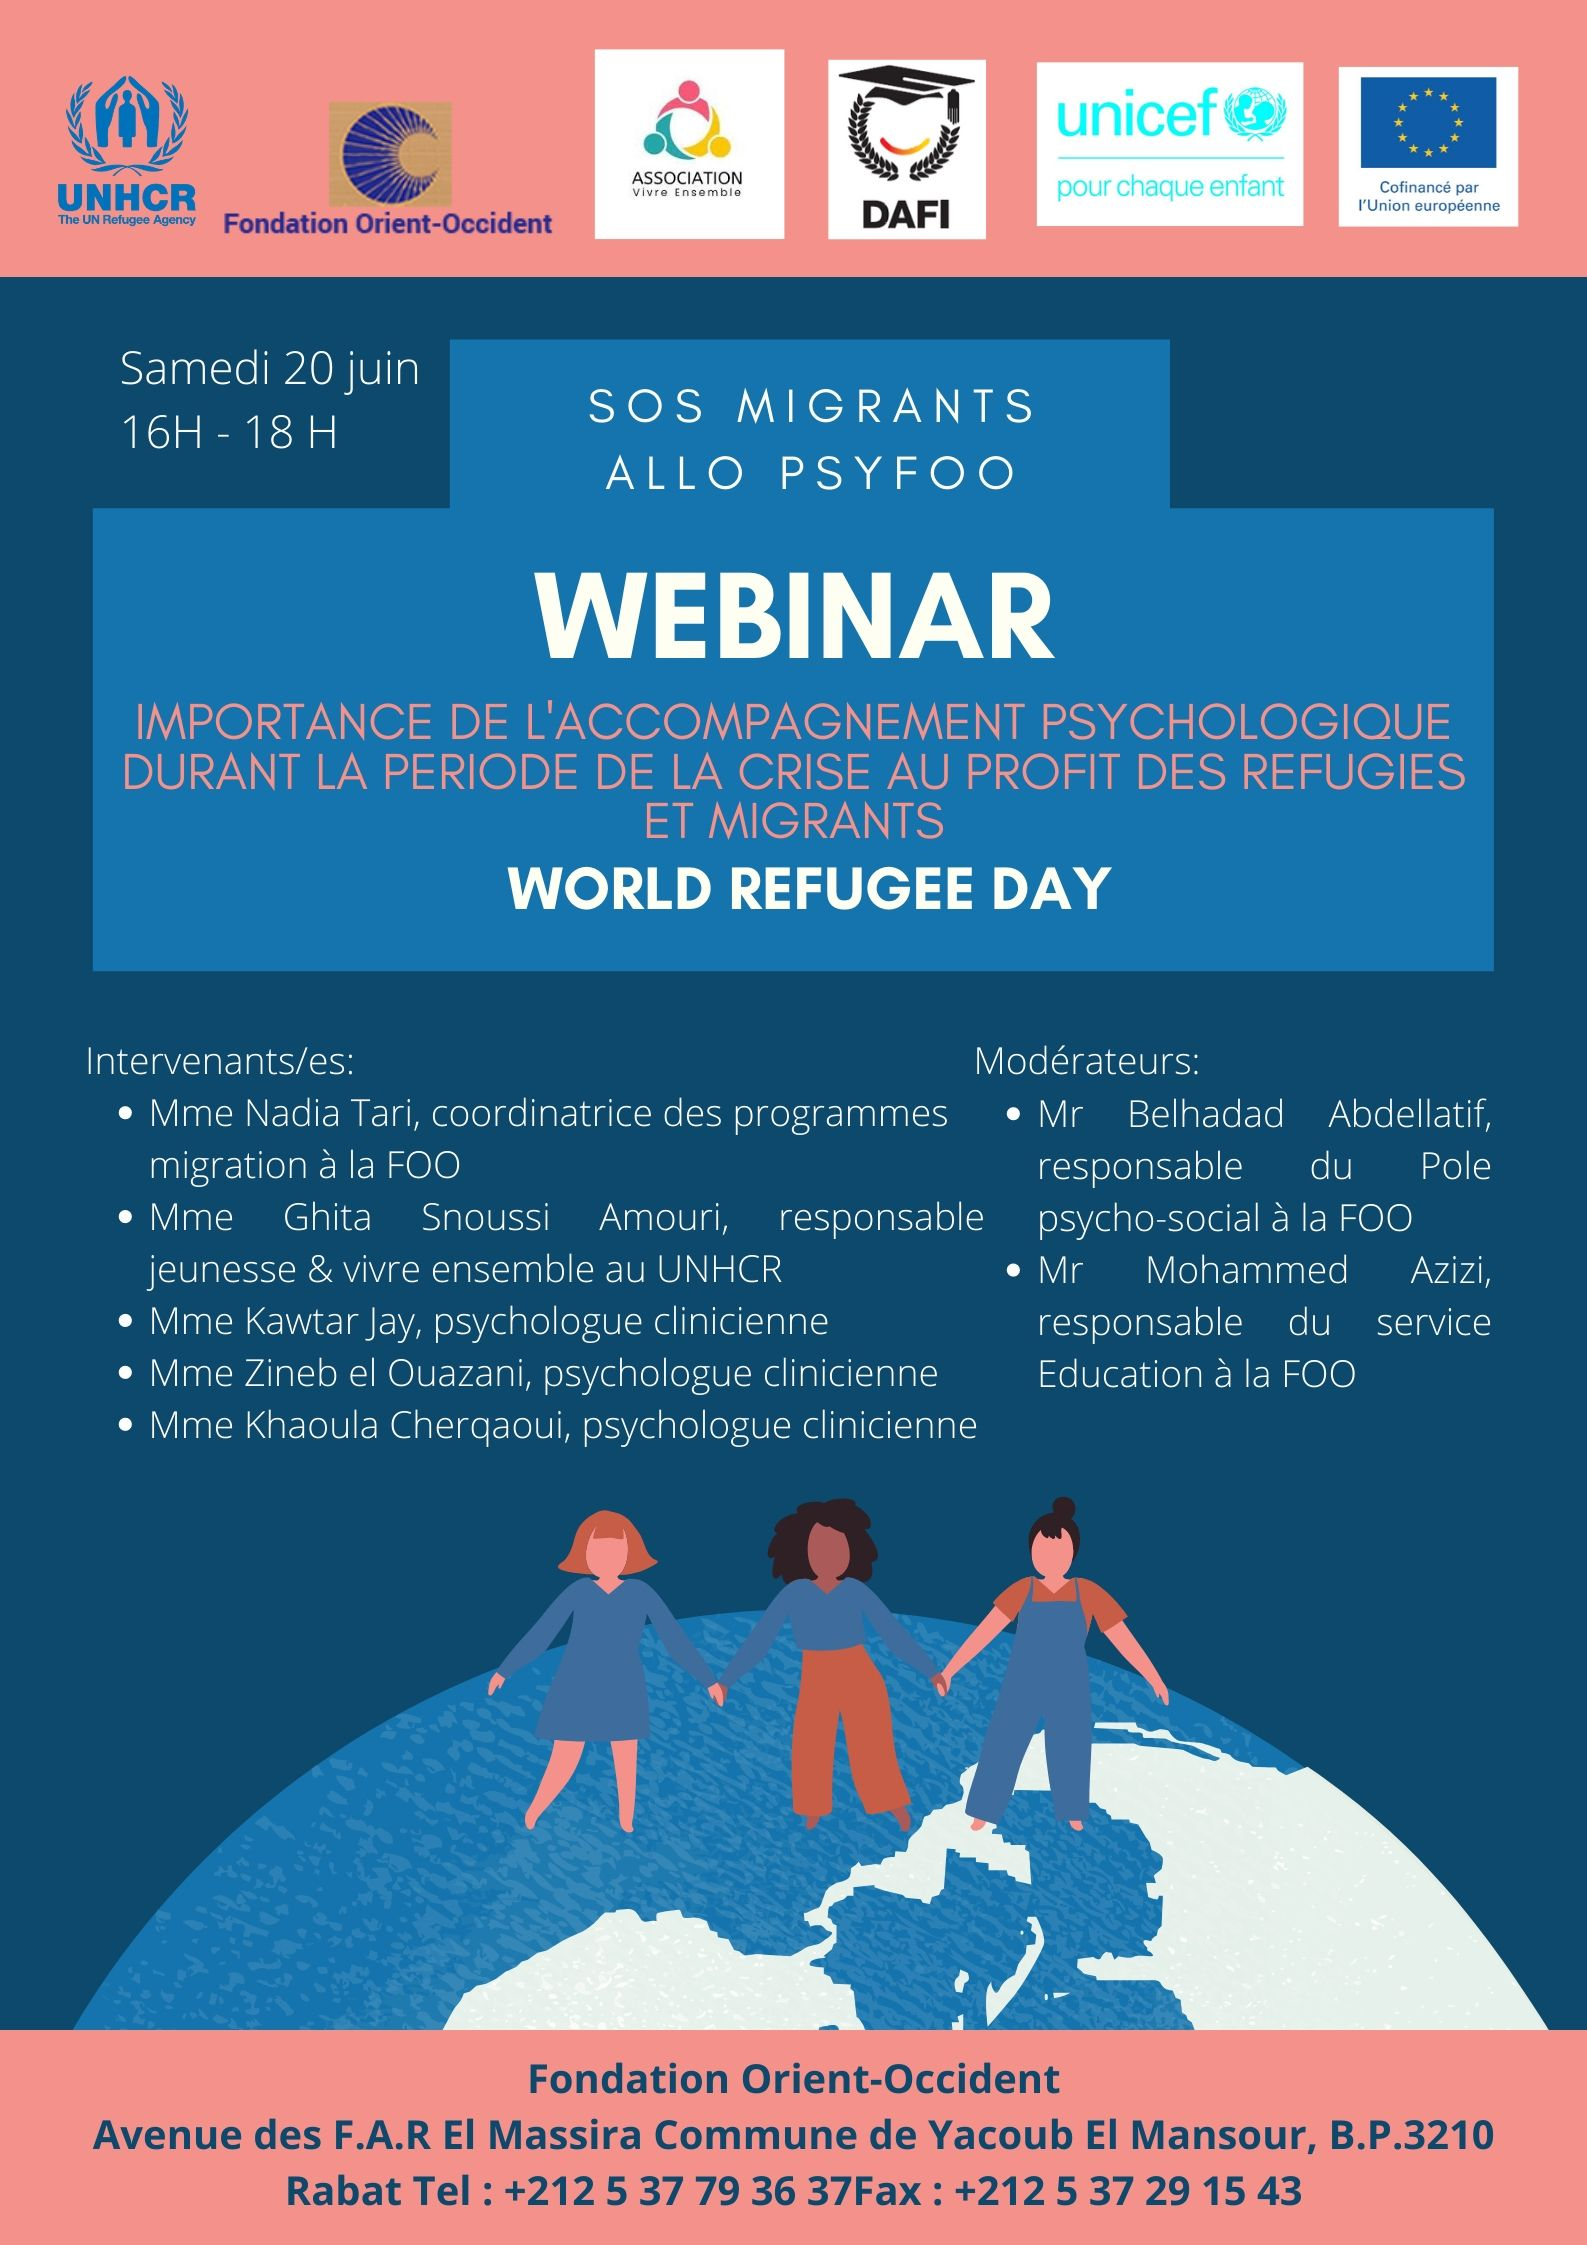 WEBINAR ON THE OCCASION OF THE WORLD REFUGEE DAY